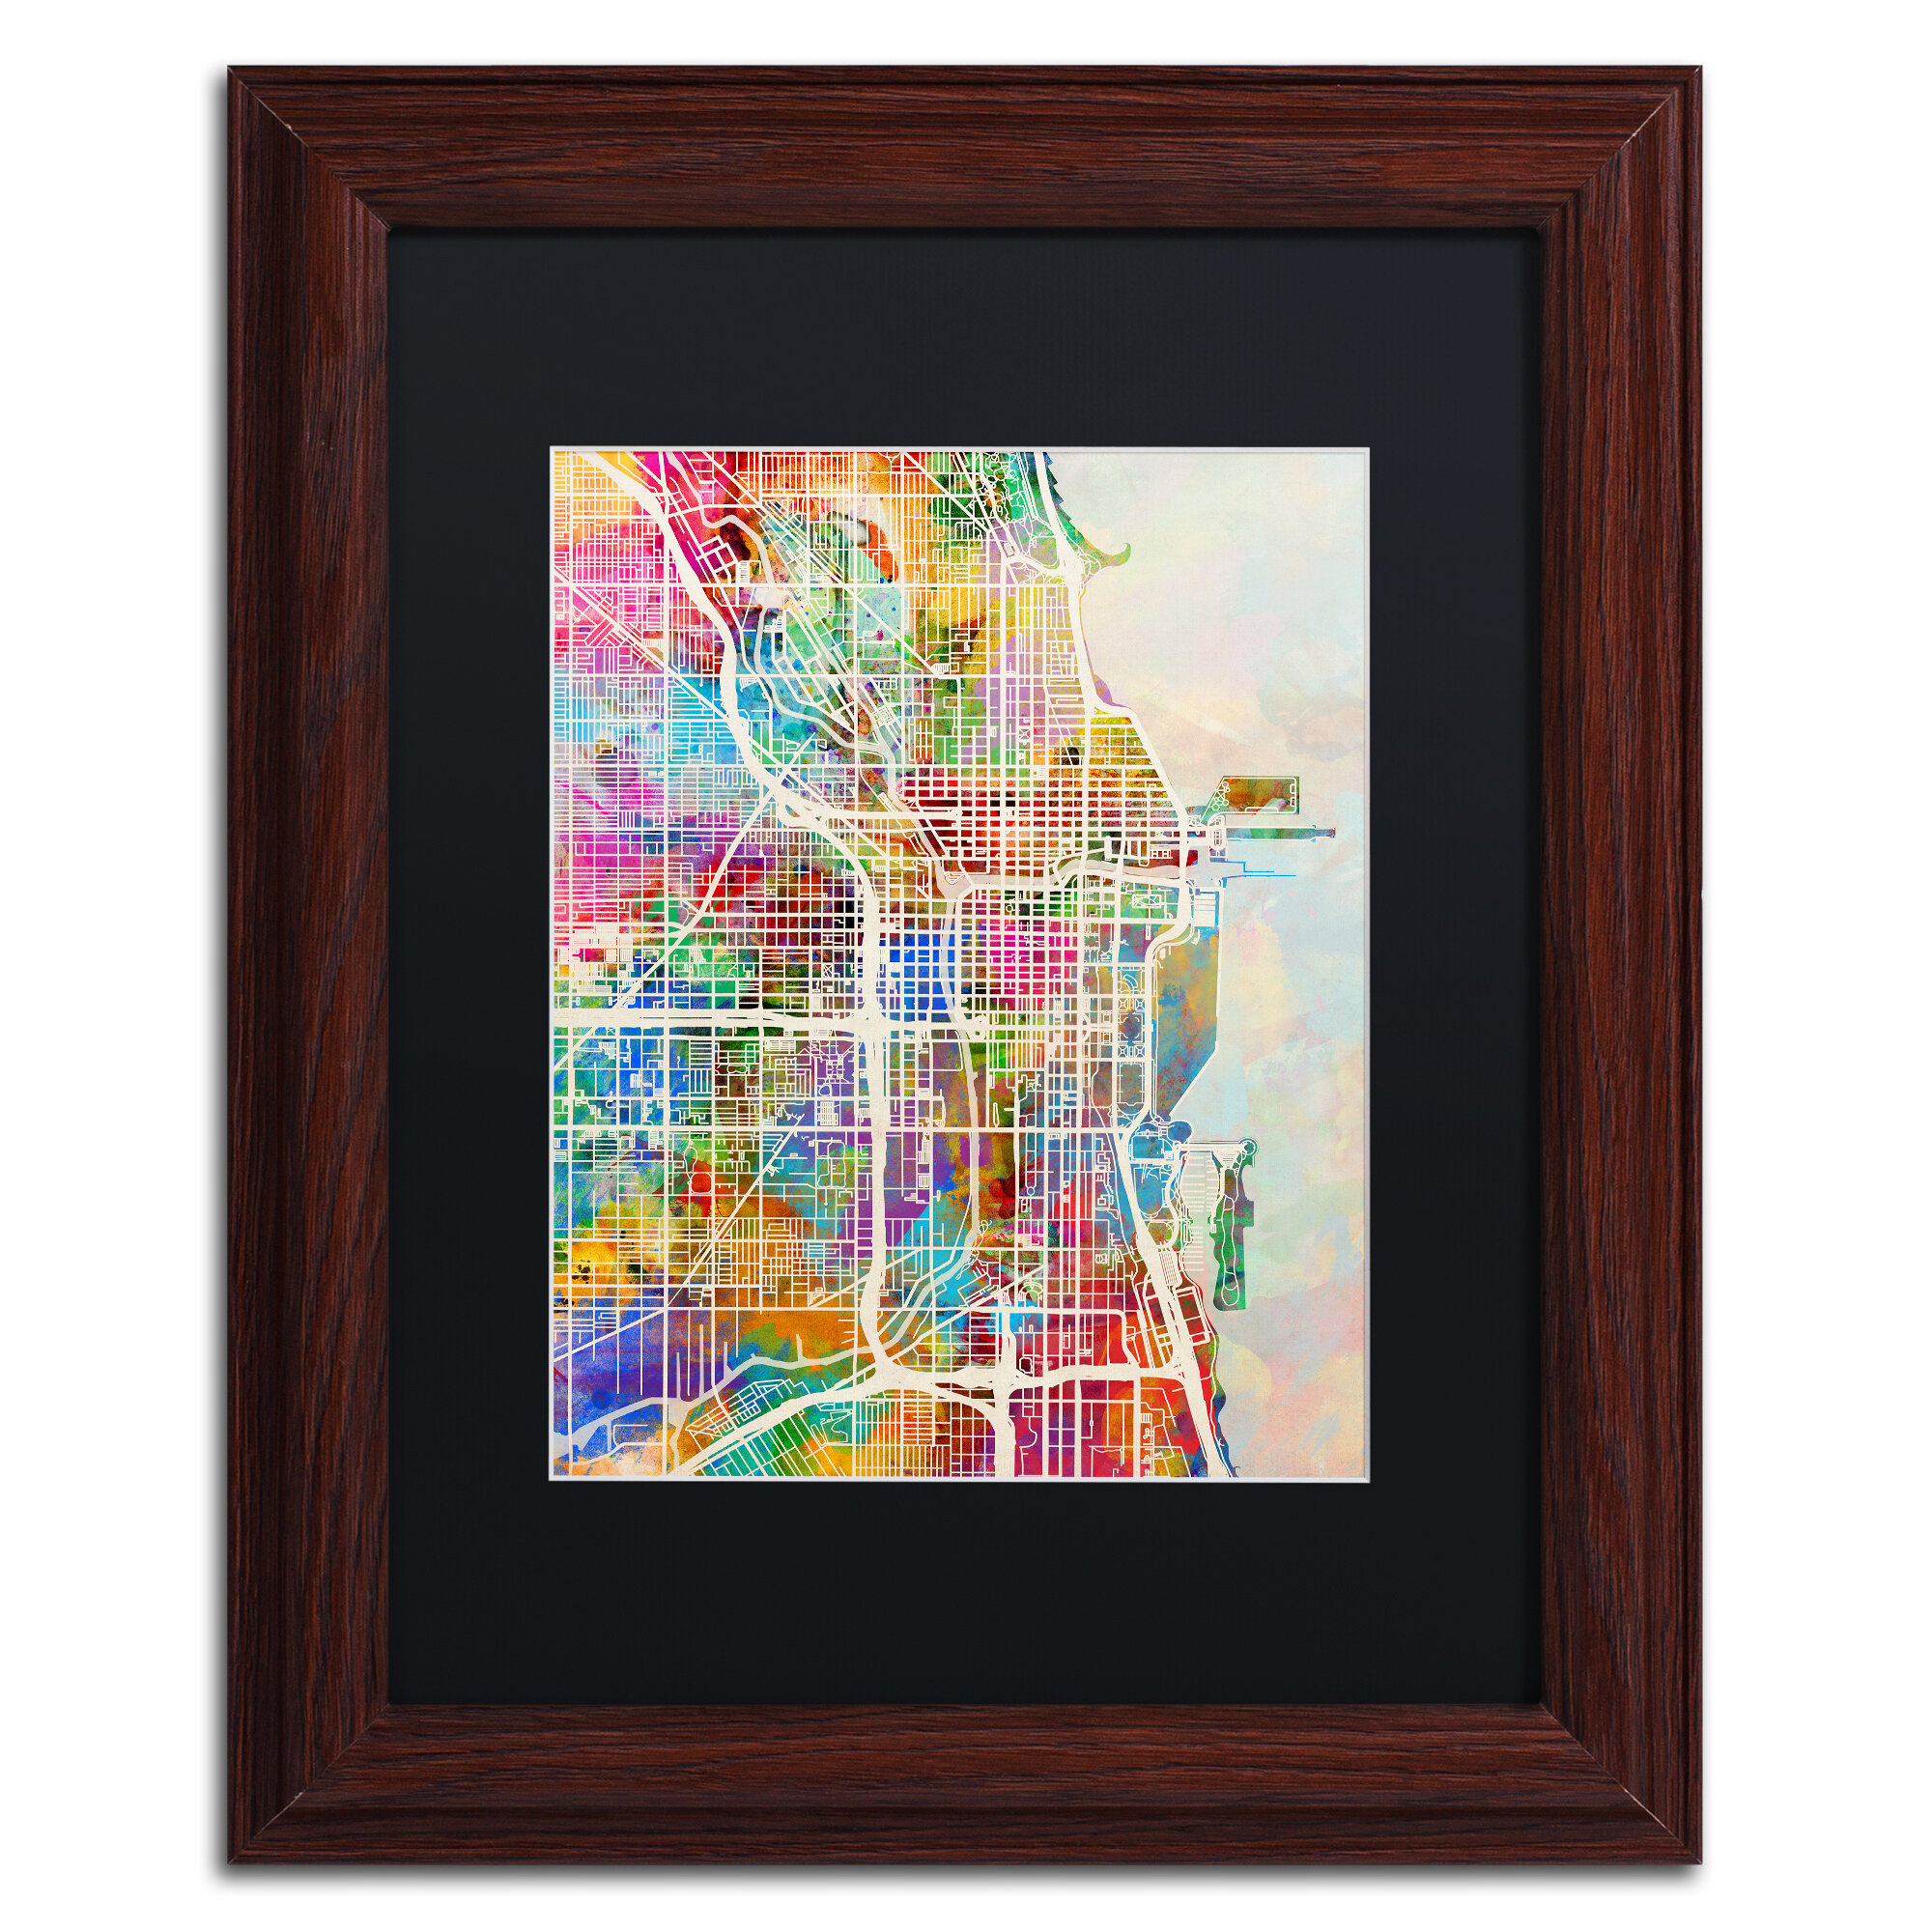 Trademark Art Chicago City Street Map Ii Framed Graphic Art Print On Canvas Wayfair